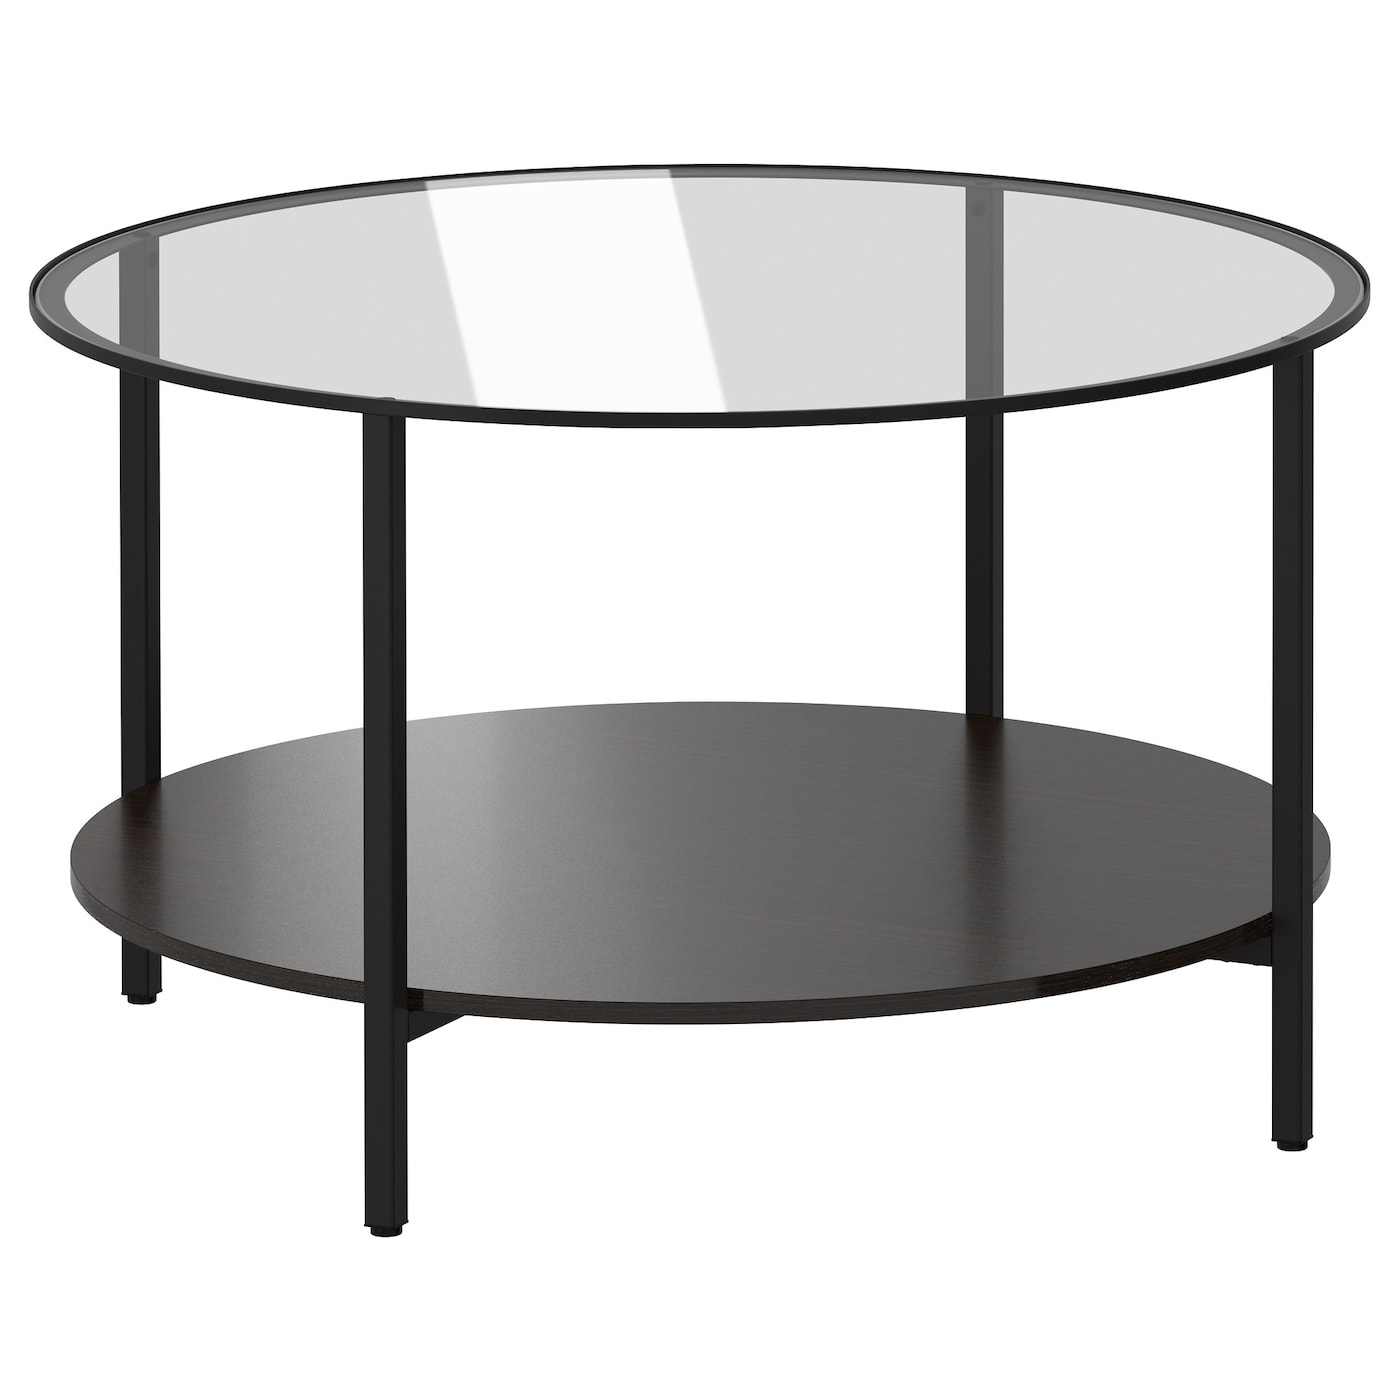 vittsj table basse brun noir verre 75 cm ikea. Black Bedroom Furniture Sets. Home Design Ideas